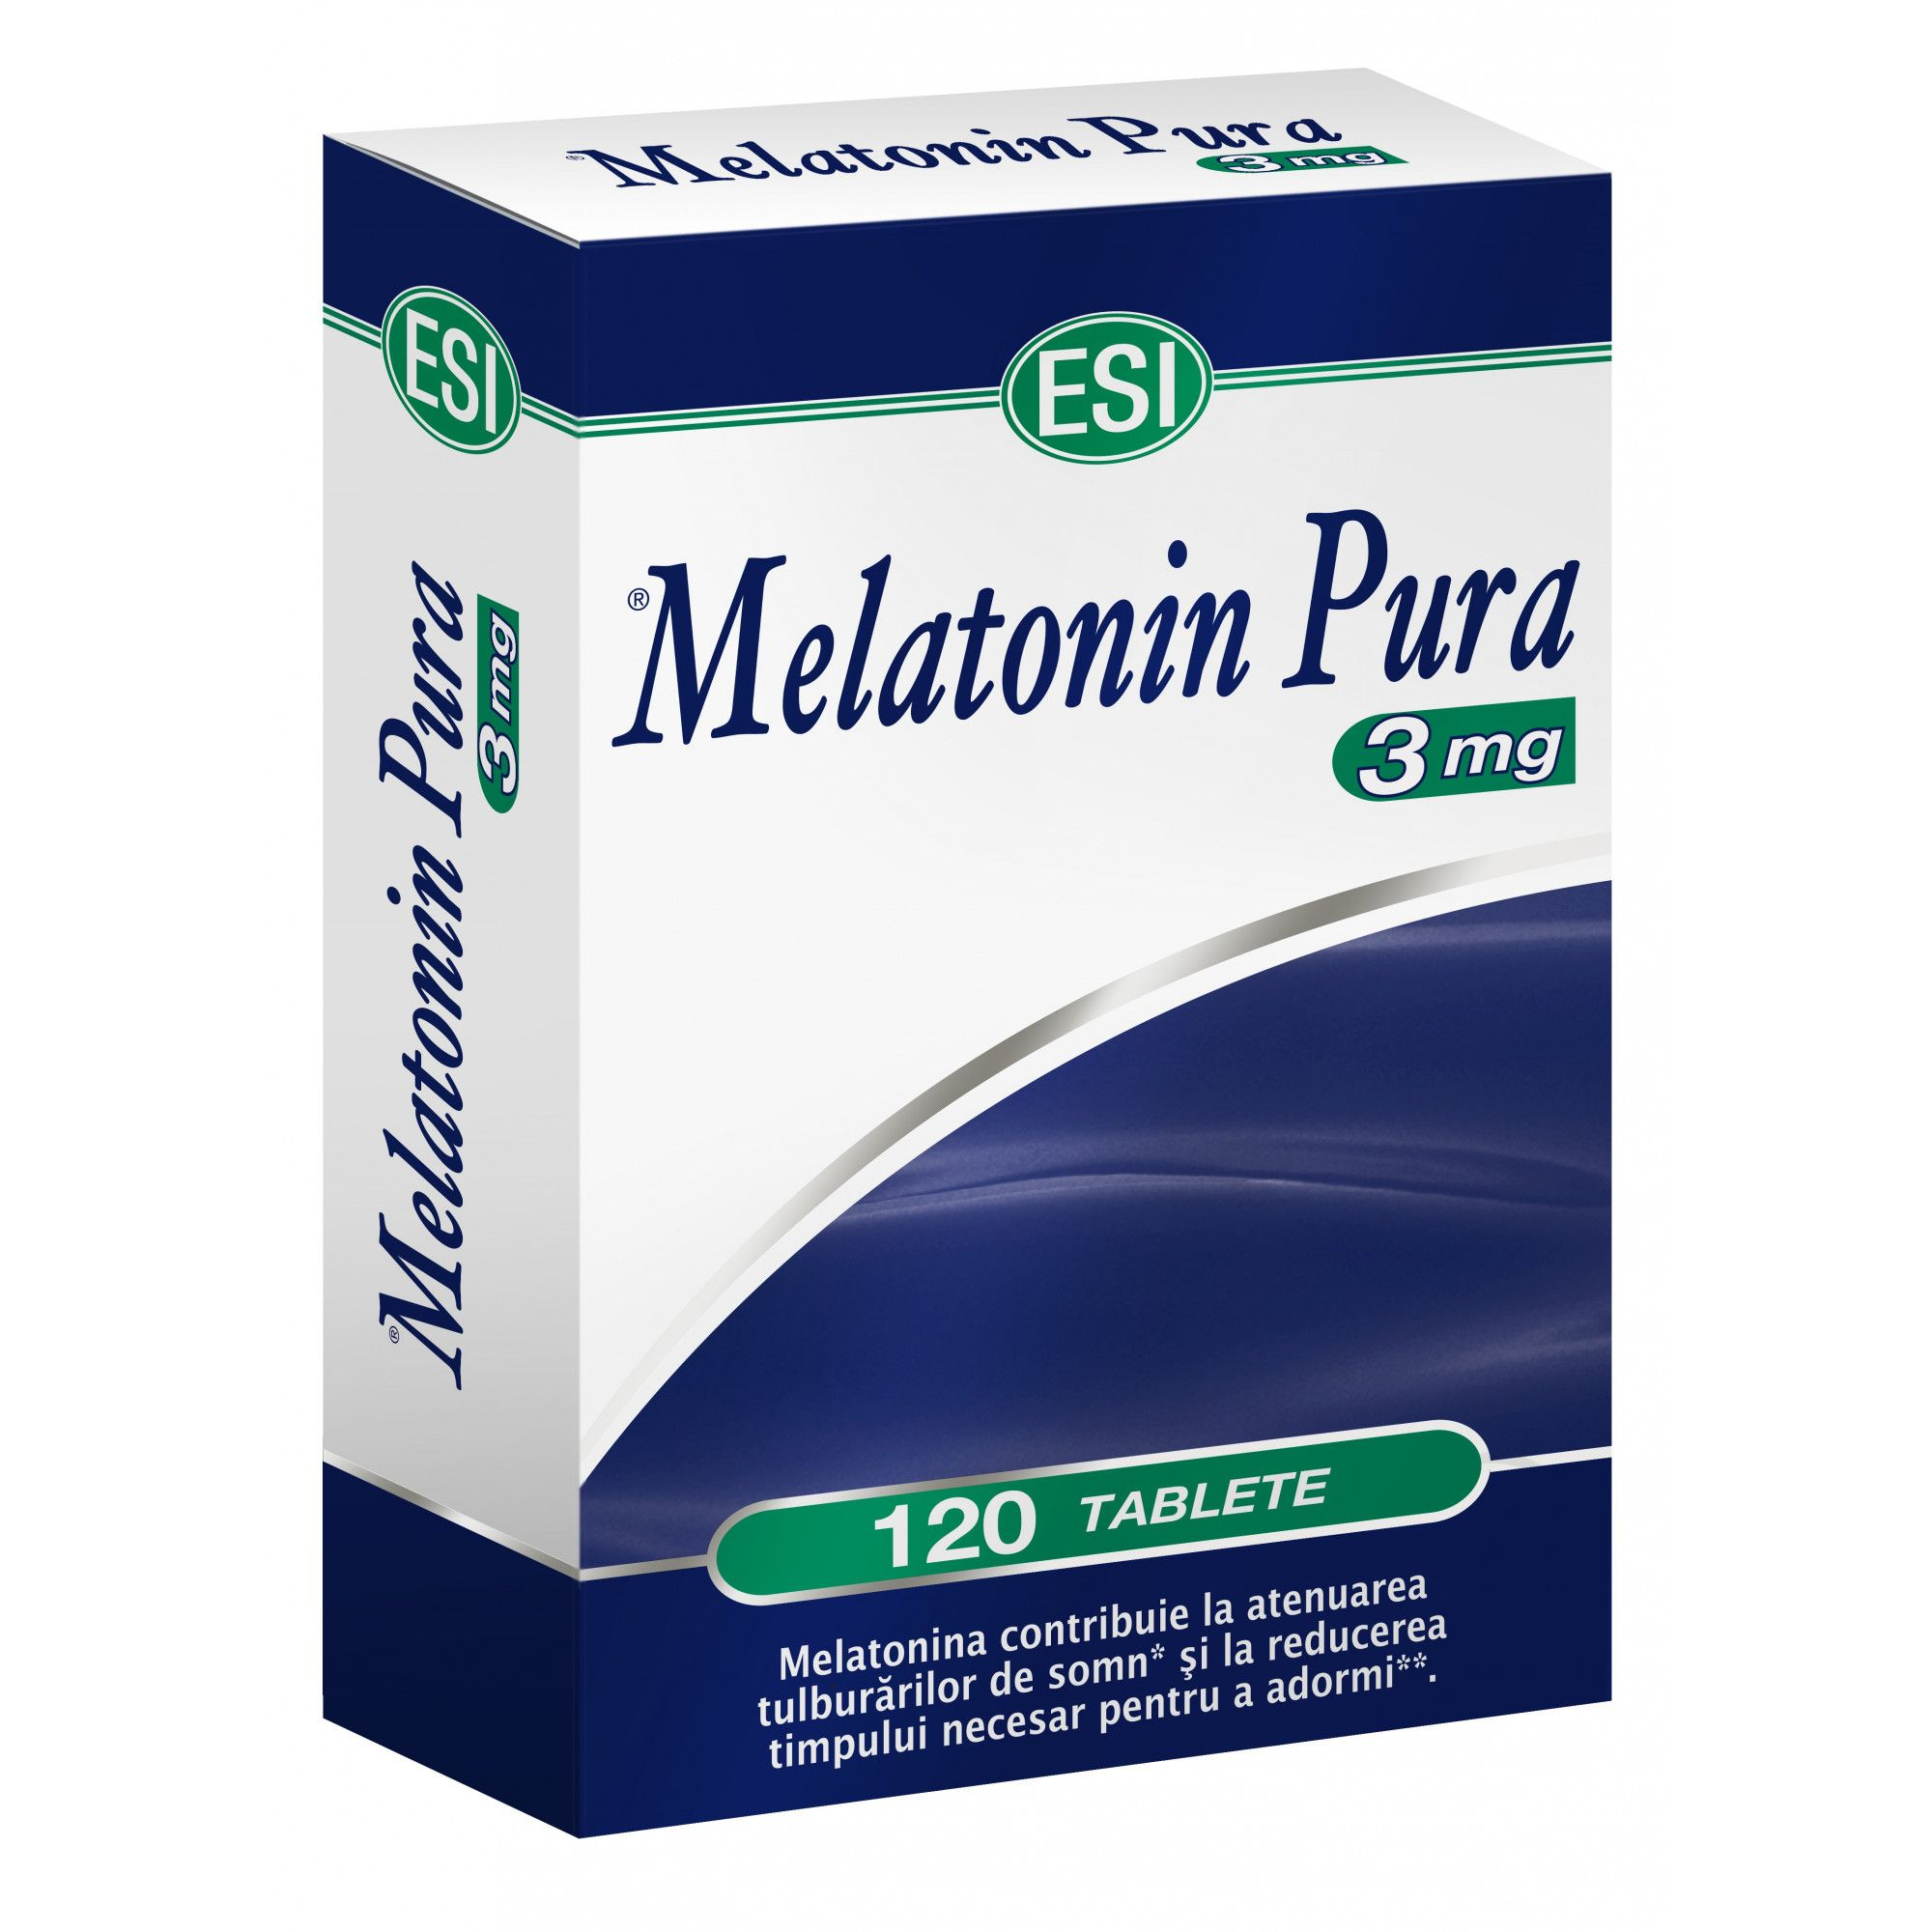 Melatonina Pura, 3 mg, 120 comprimate, Esi Spa imagine produs 2021